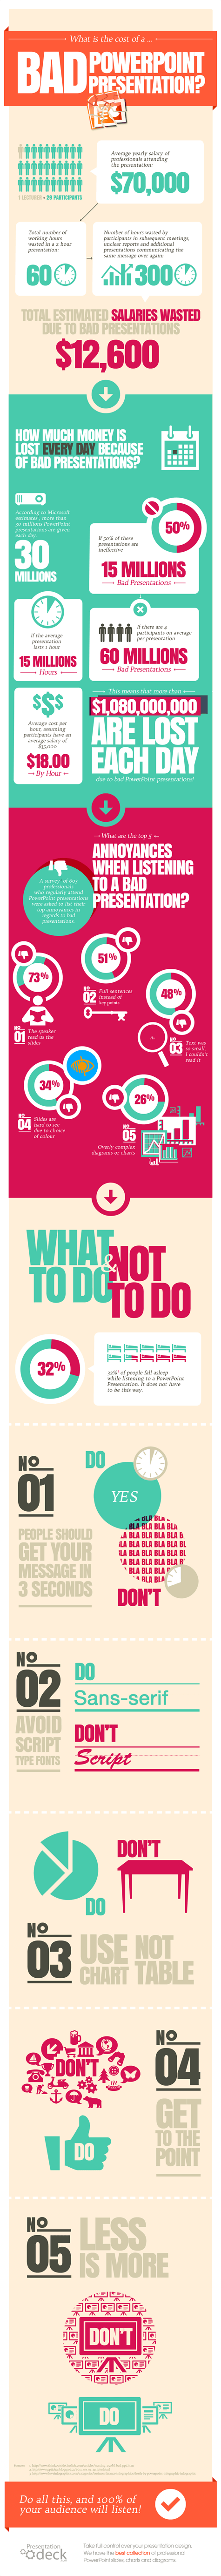 What Is the Cost of a Bad PowerPoint Presentation? Infographic